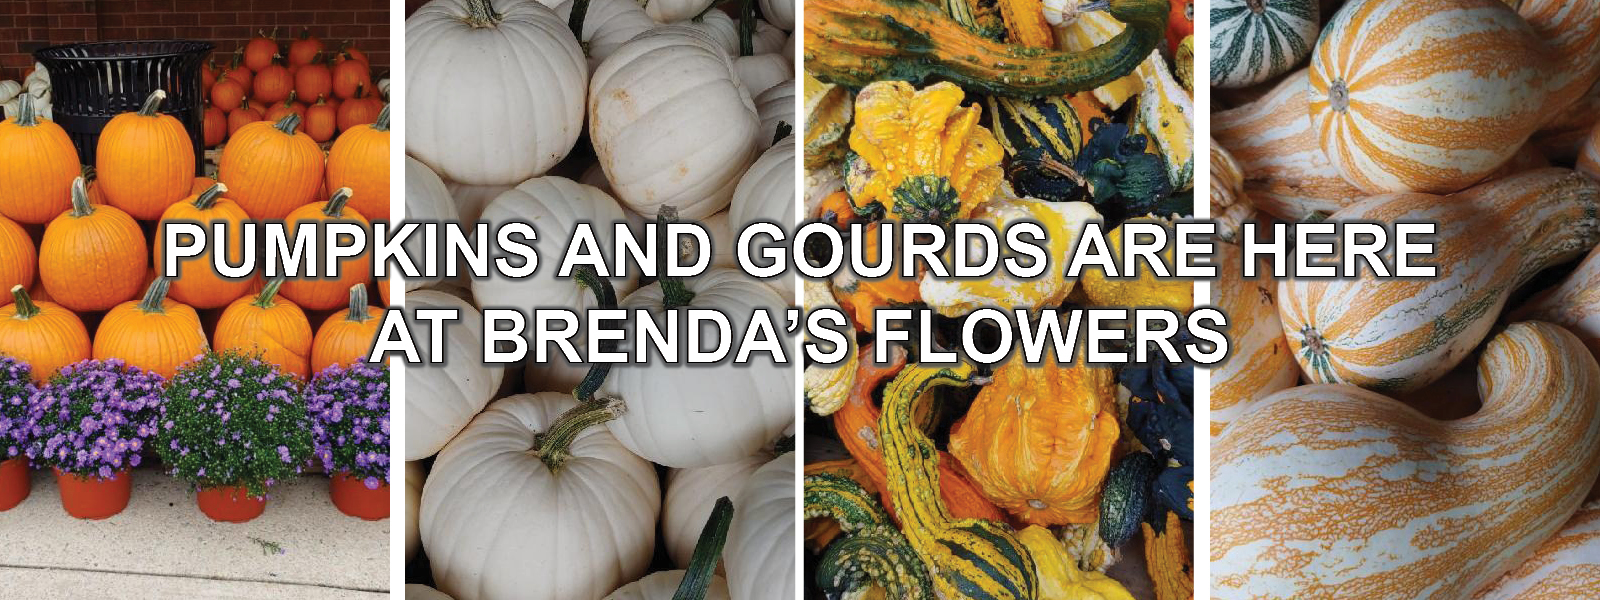 pumpkins and gourds brendas flowers